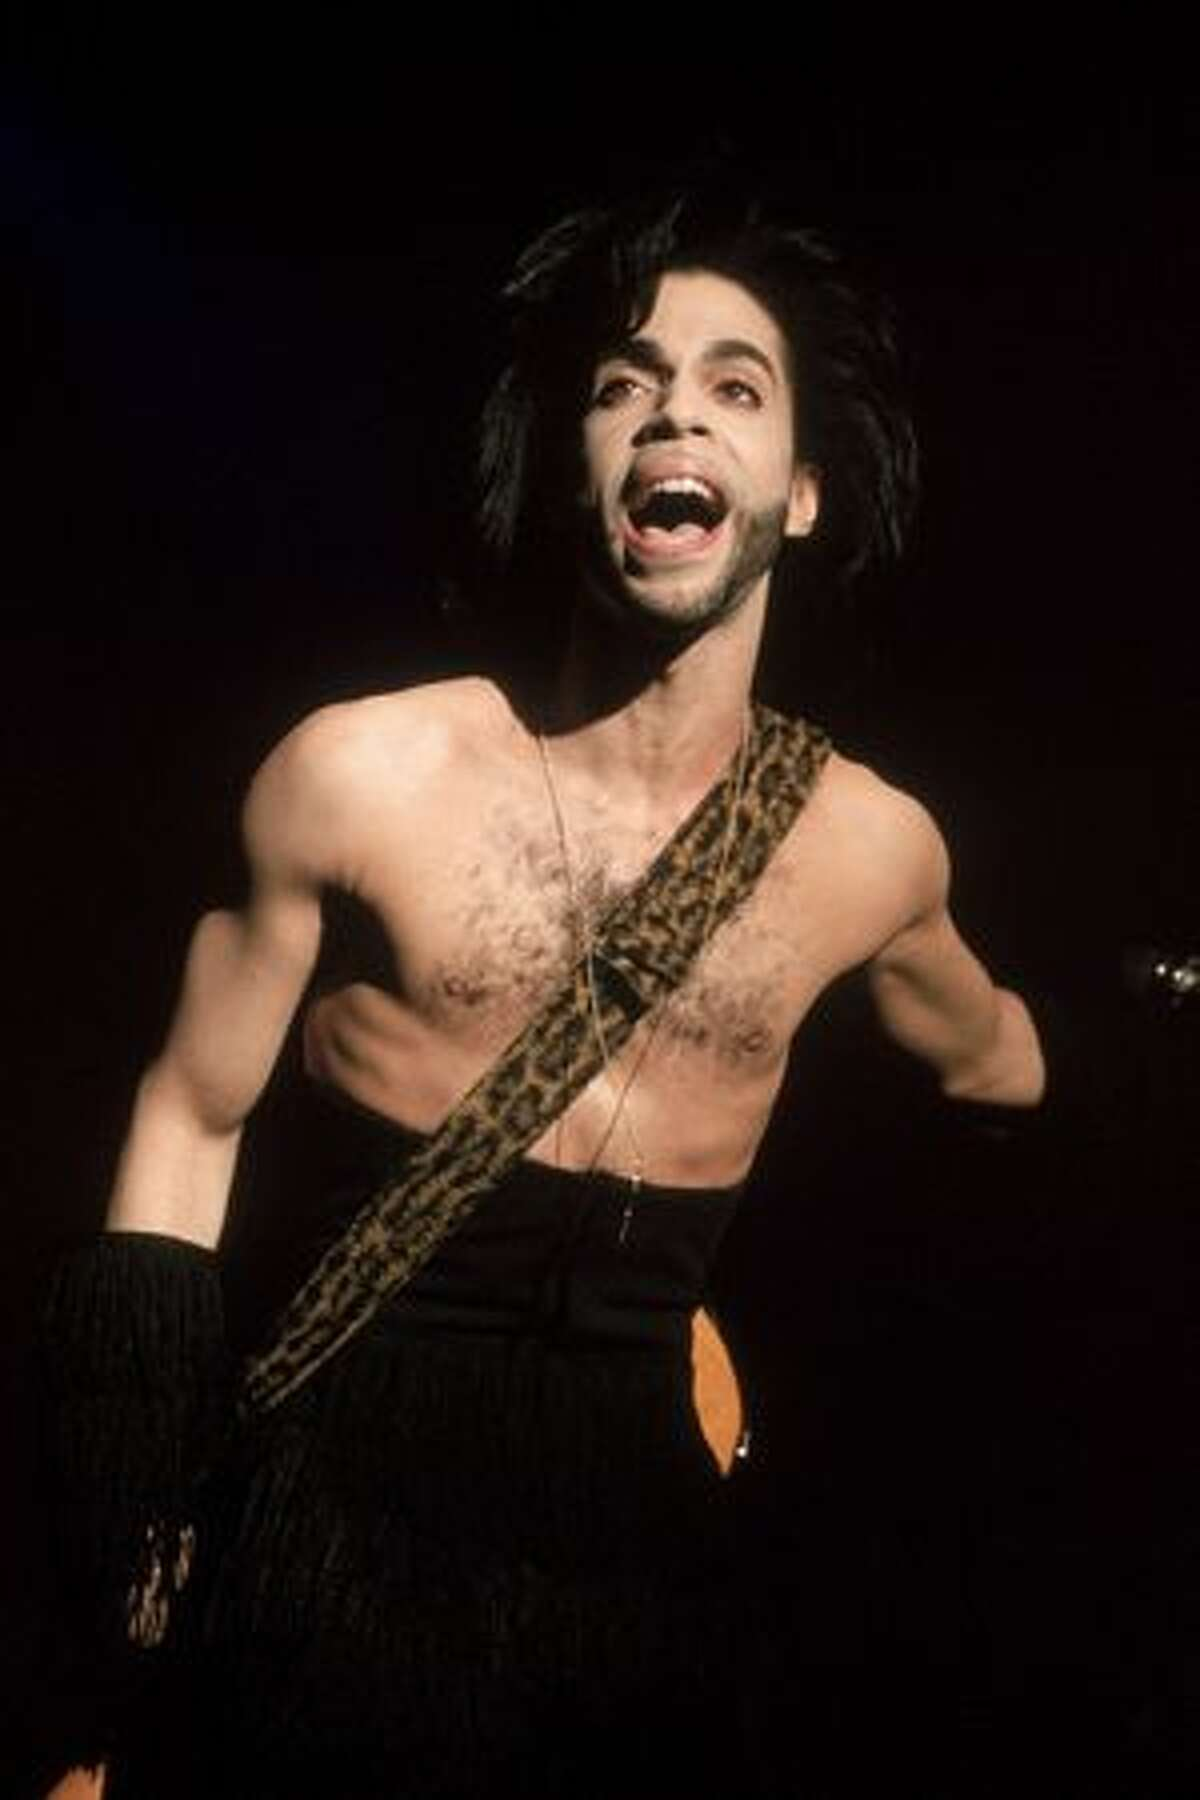 American singer and songwriter Prince performs in concert, Minneapolis, Minn., April 30, 1990.